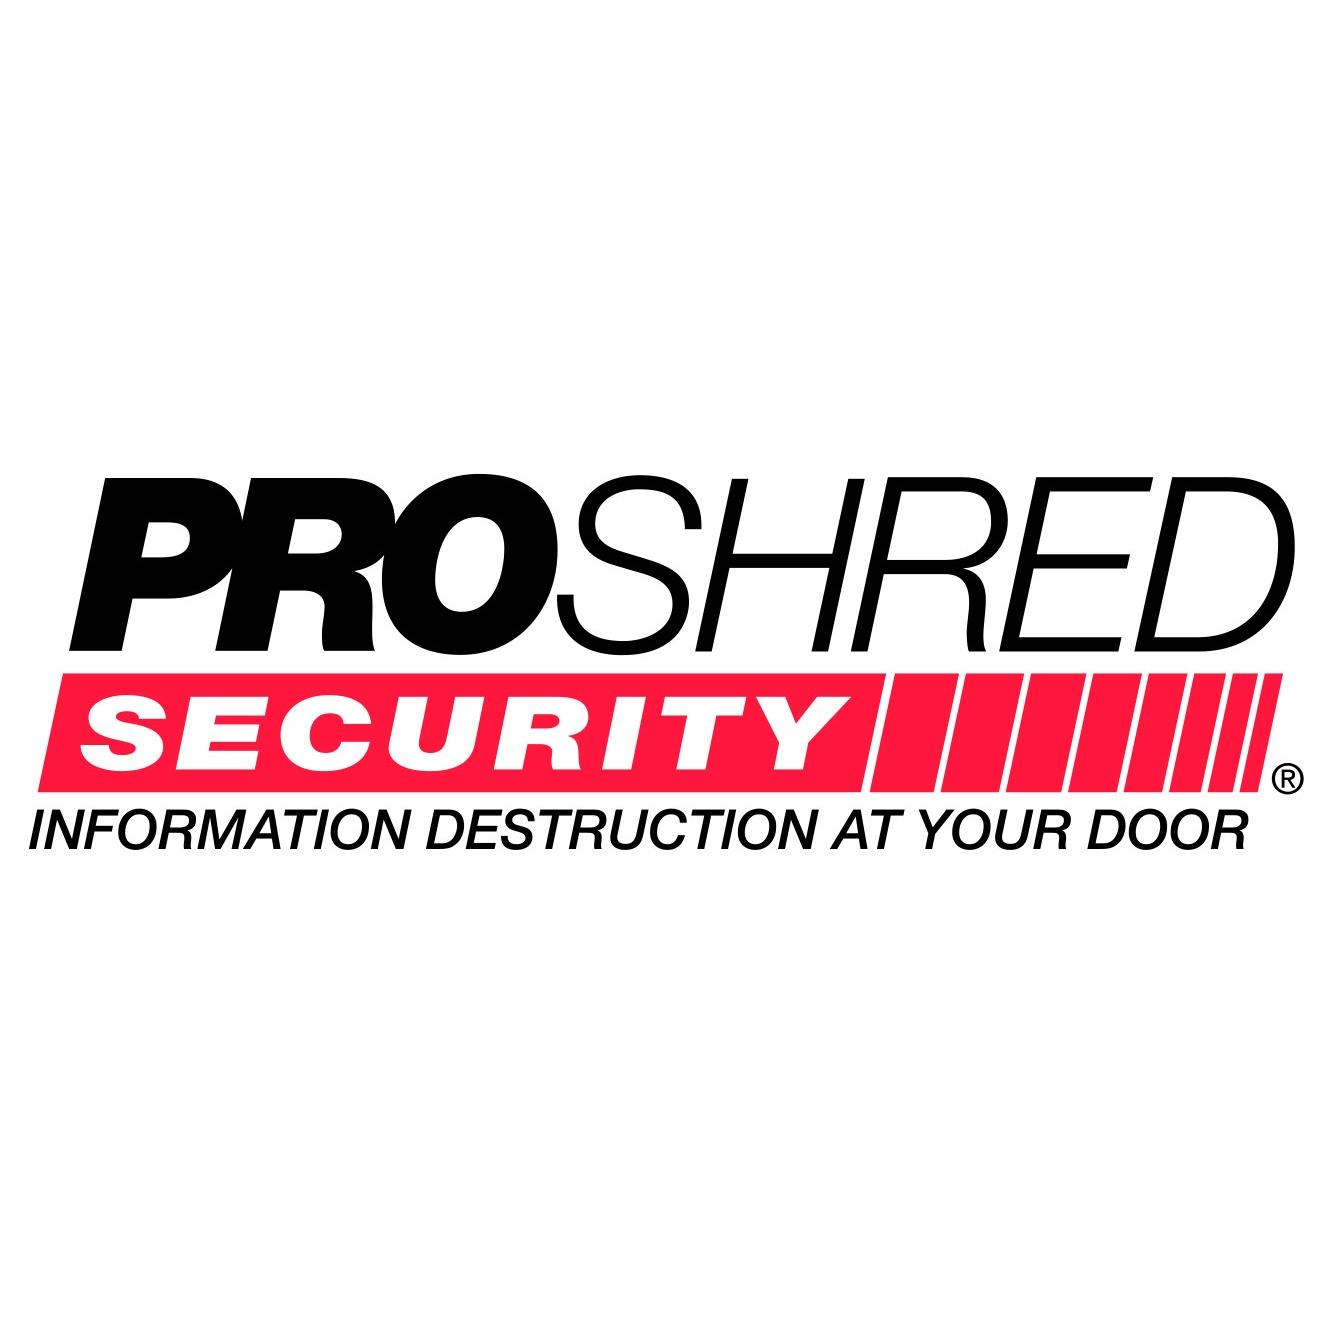 PROSHRED® Syracuse